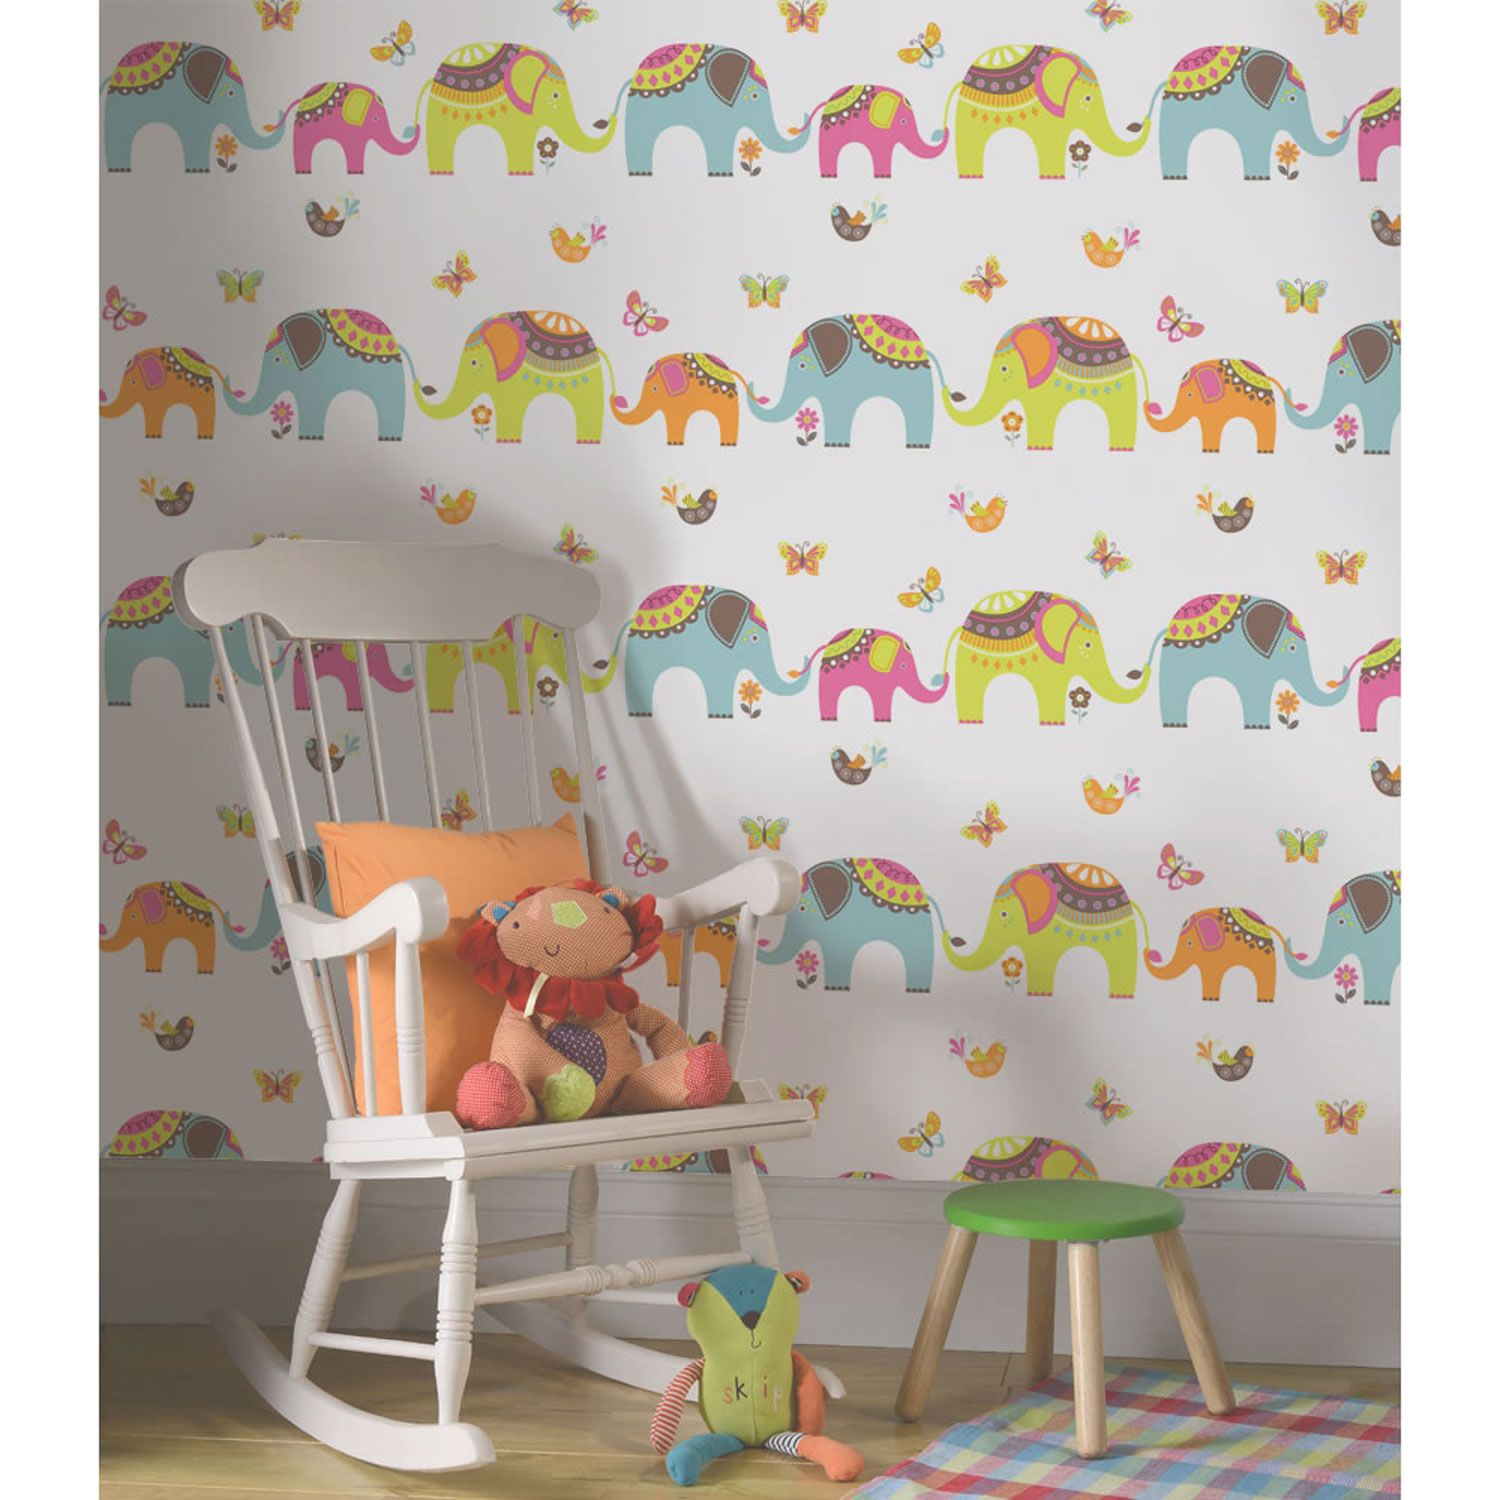 KIDS BEDROOM / NURSERY WALLPAPER HOLDEN DECOR PLAYTIME